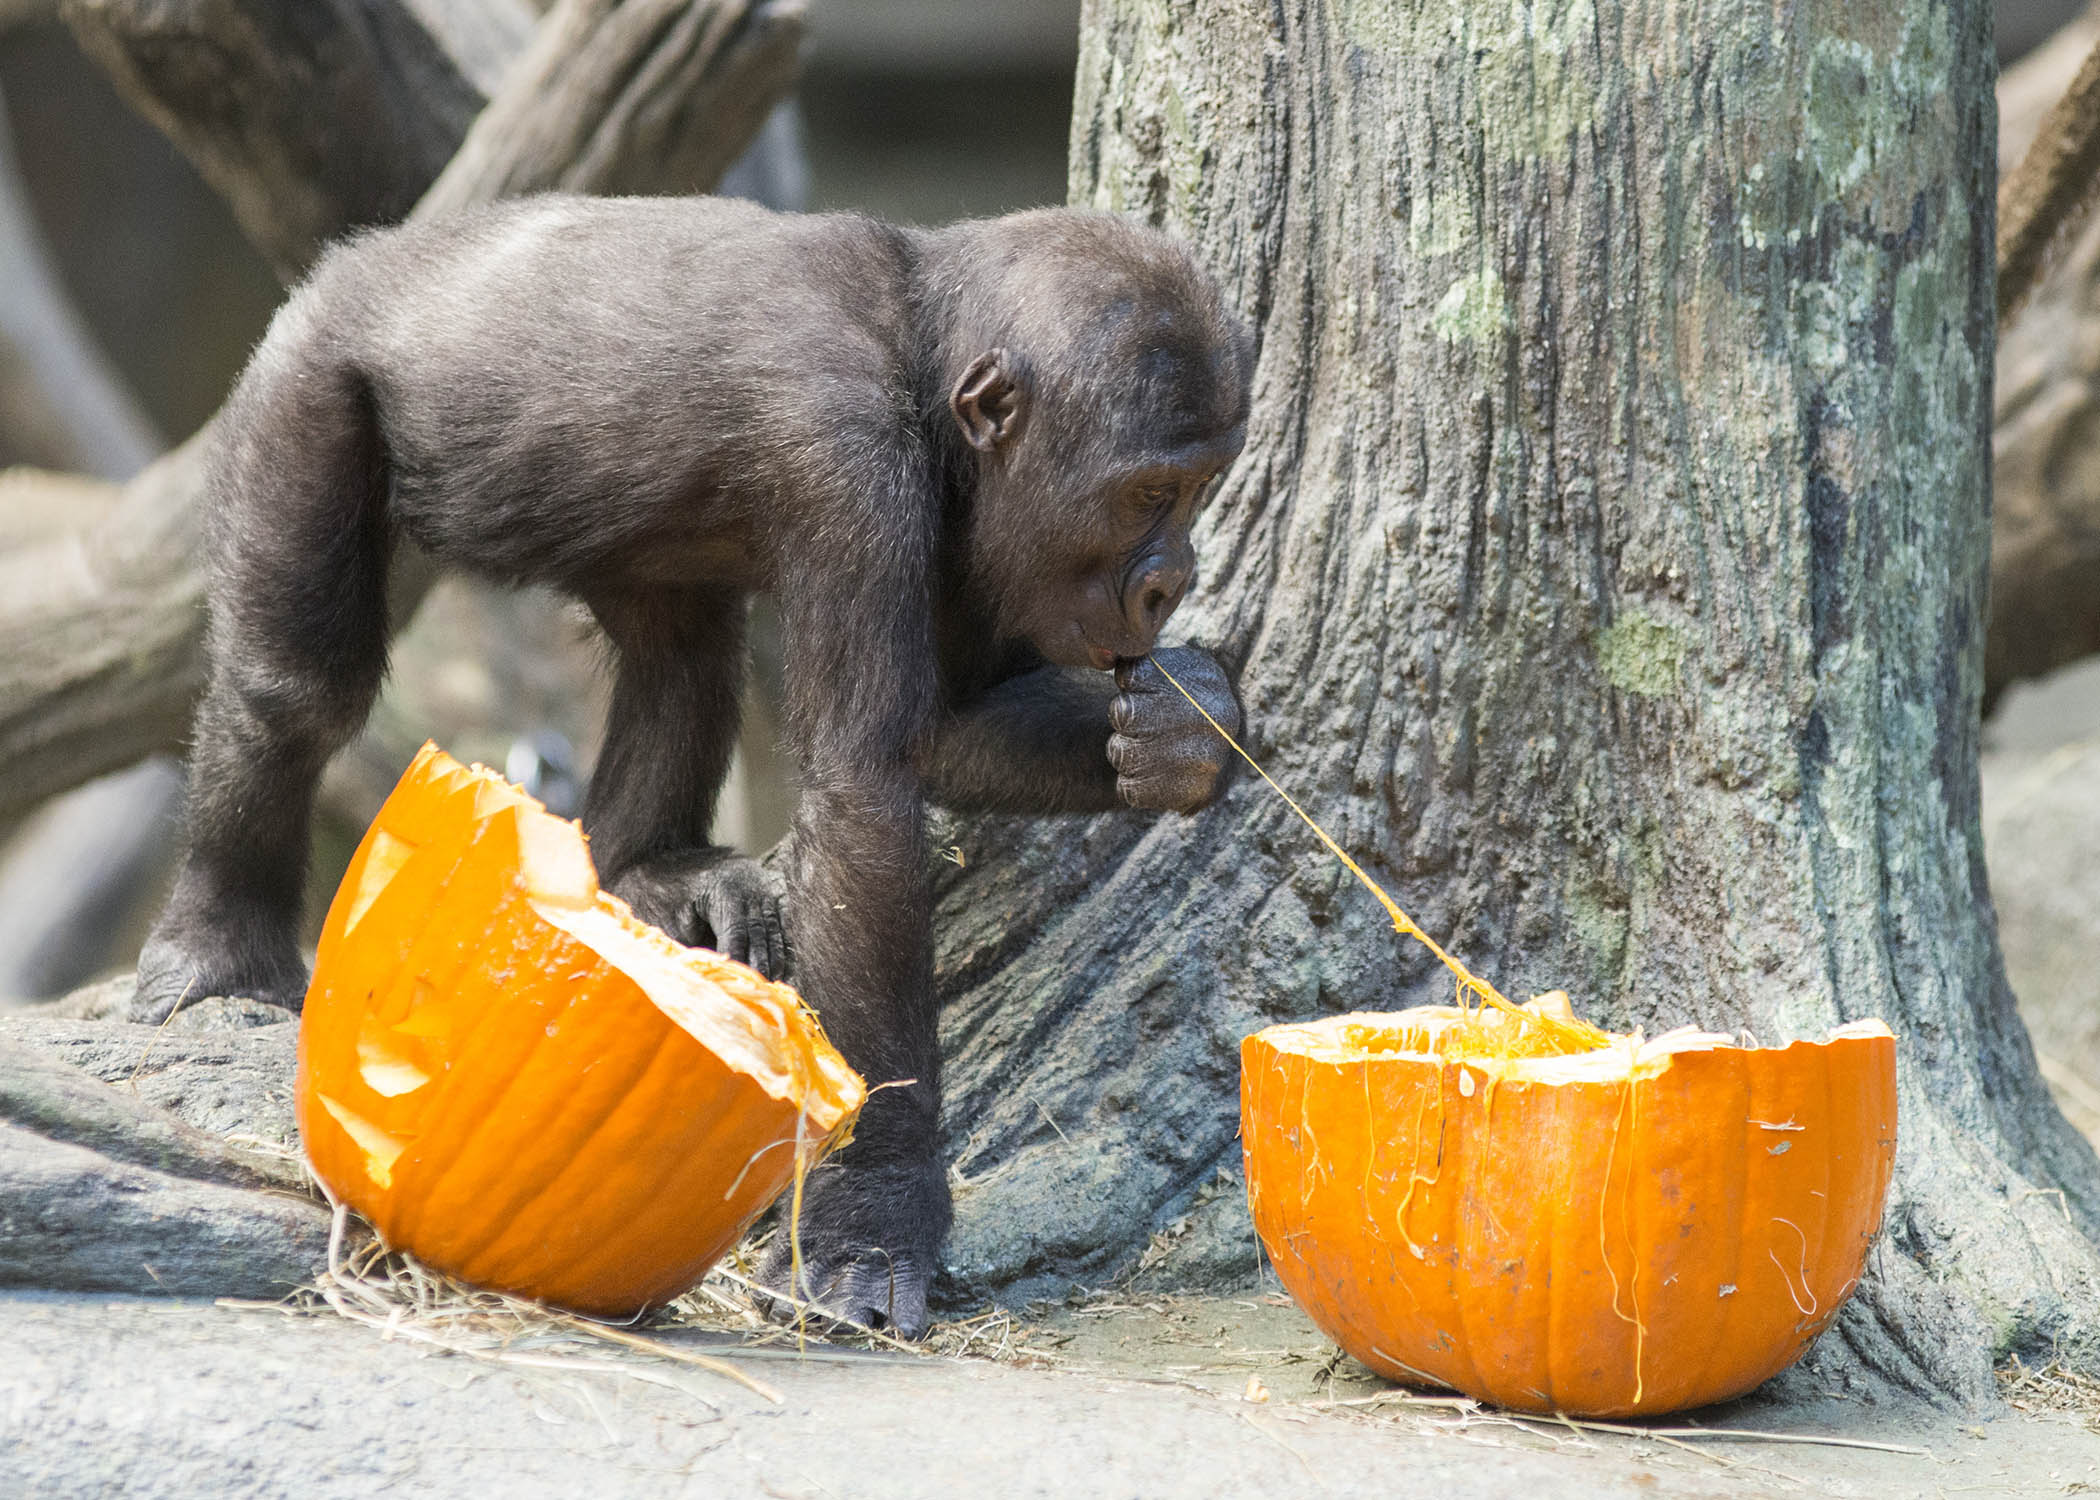 "<div class=""meta image-caption""><div class=""origin-logo origin-image wls""><span>WLS</span></div><span class=""caption-text"">Zachary, a western lowland gorilla at Brookfield Zoo, seems to be enjoying an early Halloween treat. (Kelly Tone/Chicago Zoological Society)</span></div>"